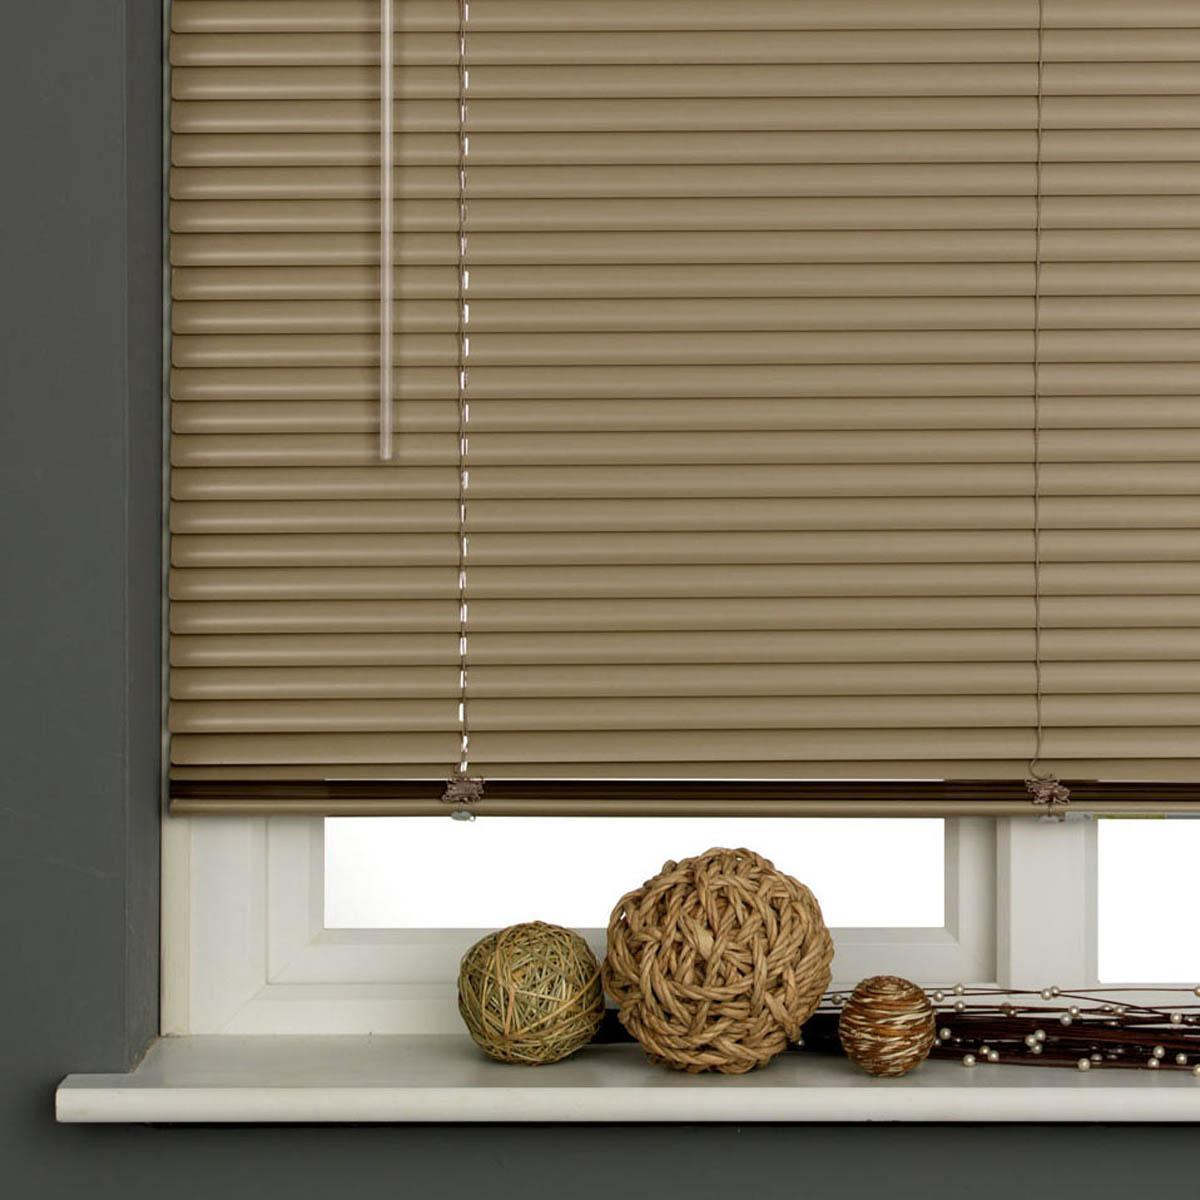 25mm Aluminum Venetian Blind Latte